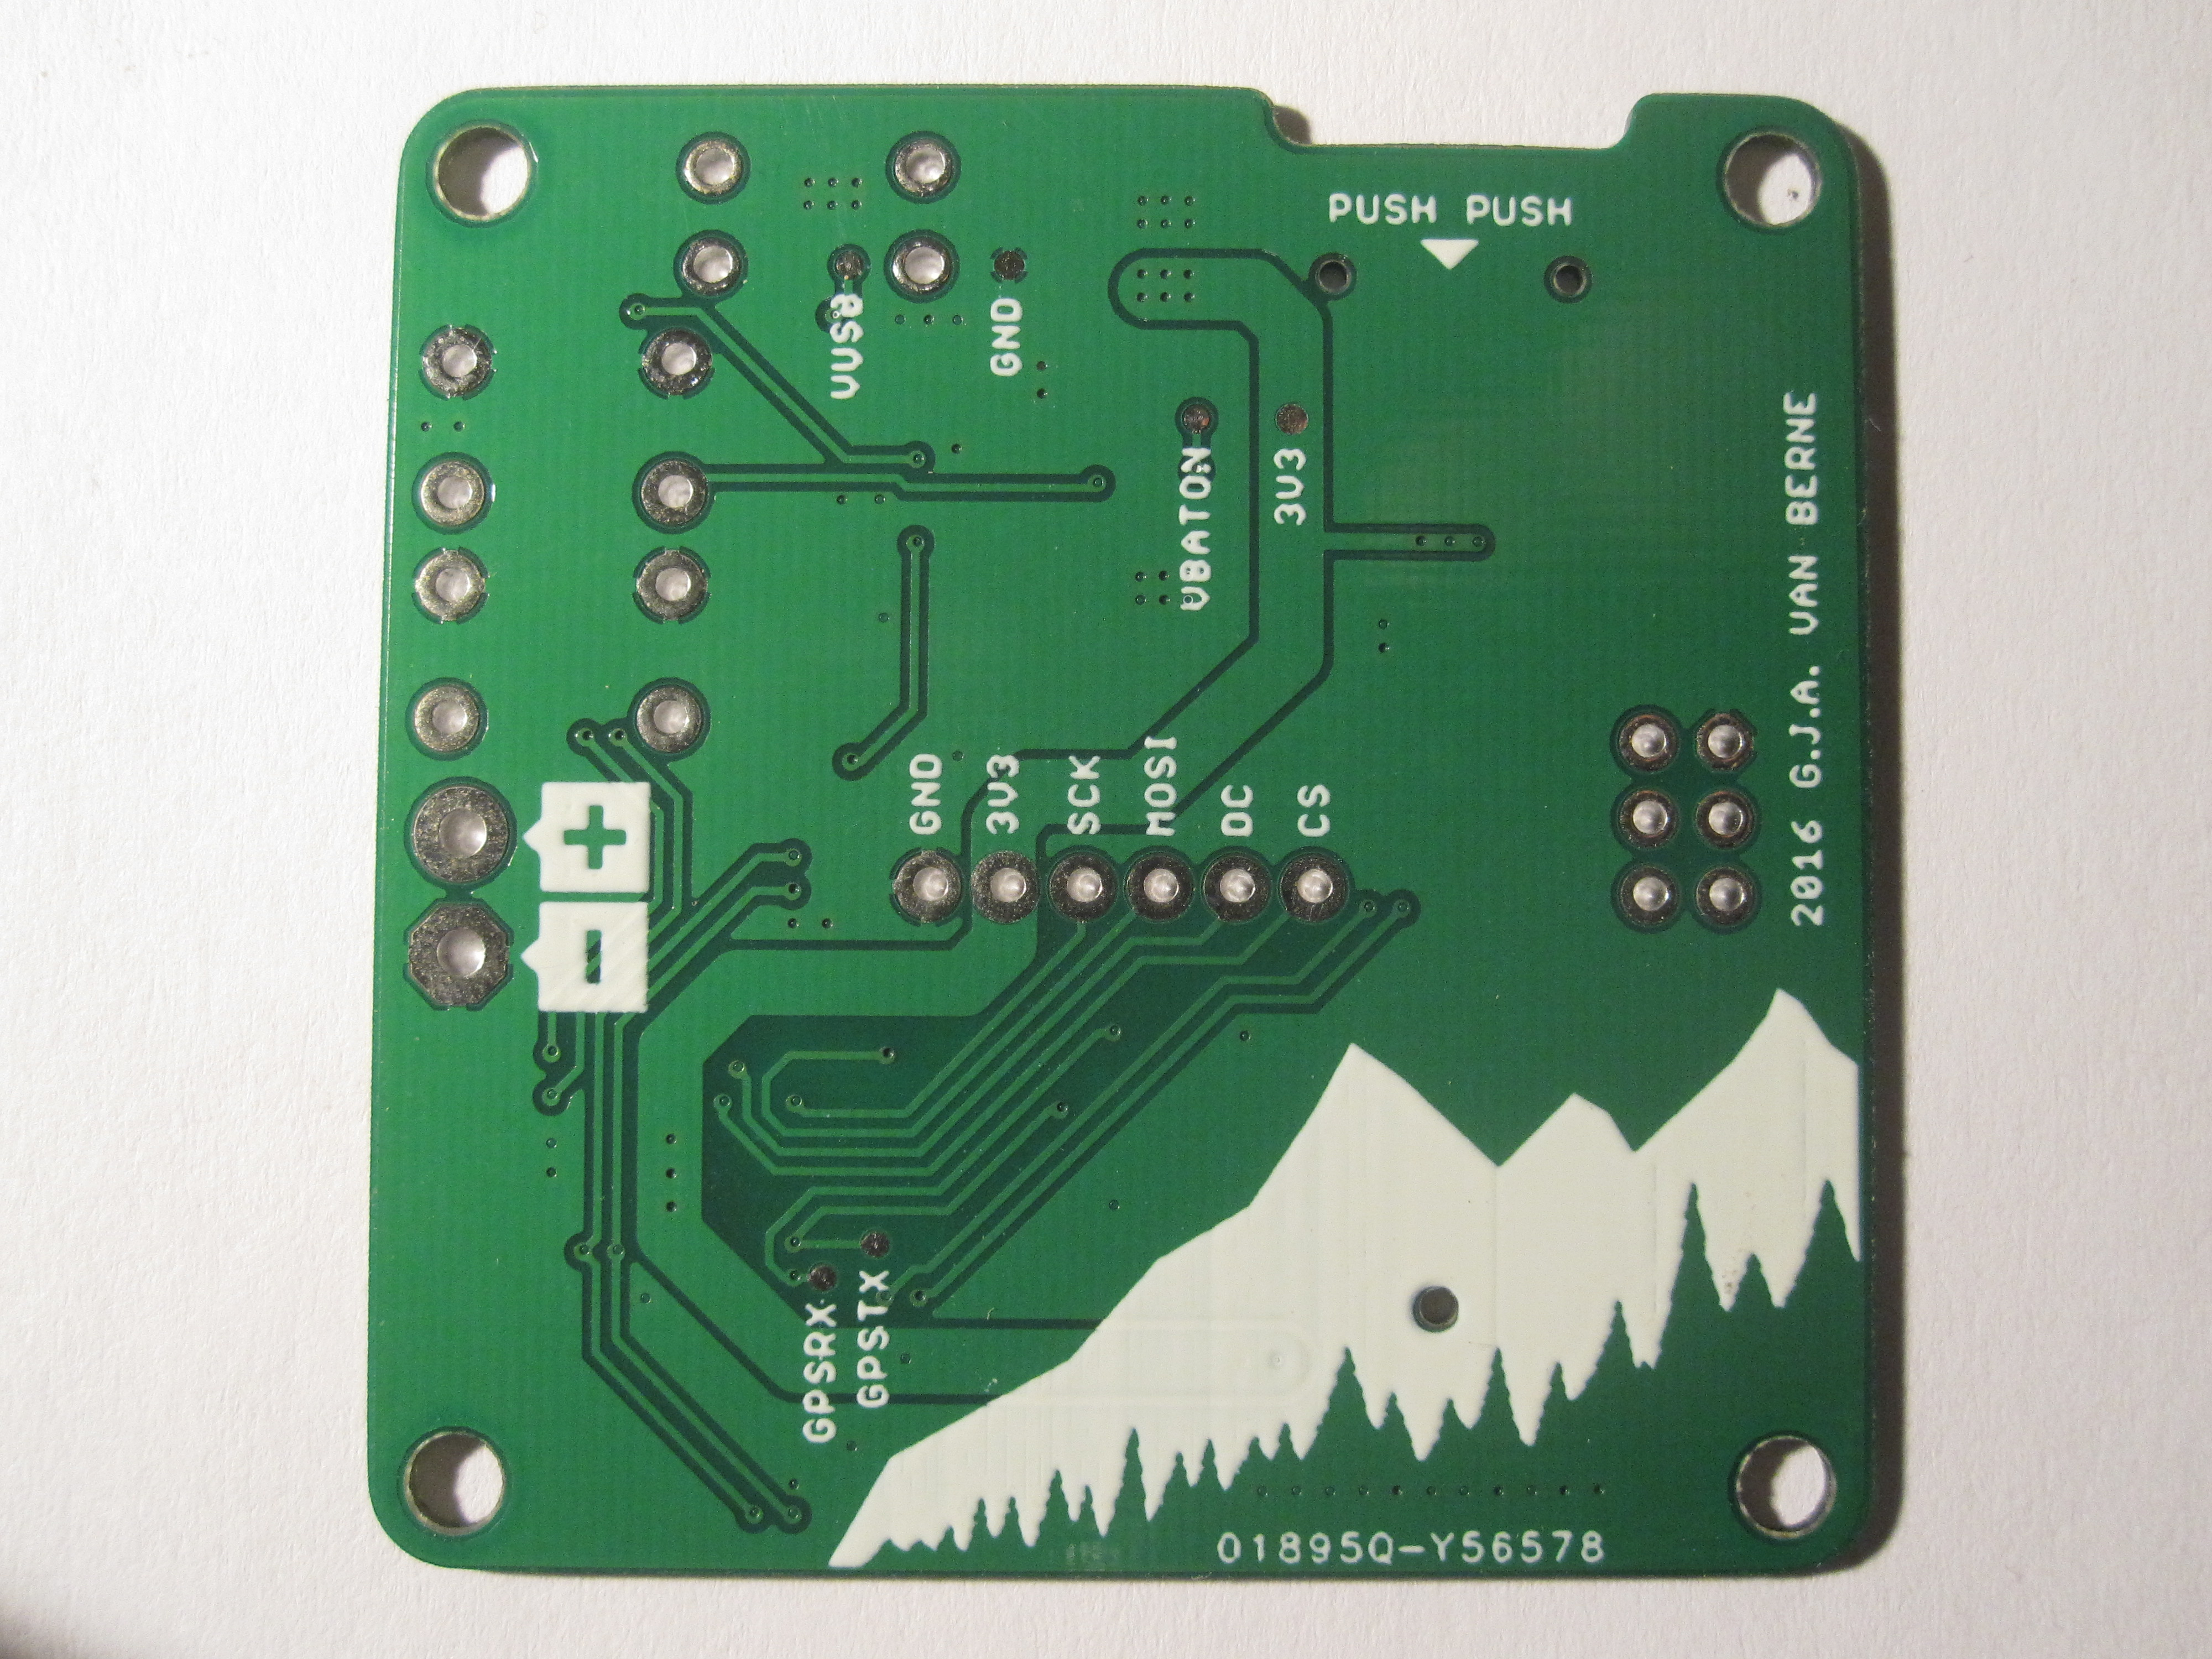 Seeedstudio Fusion Pcb Fab Service Review 990 For 10 Custom Circuit Board Trace Side Minimum Width Used 03mm Space Between Traces Polygons Vias 02mm Via Size 032mm Drill 06mm Outer Diameter Designator Textsize